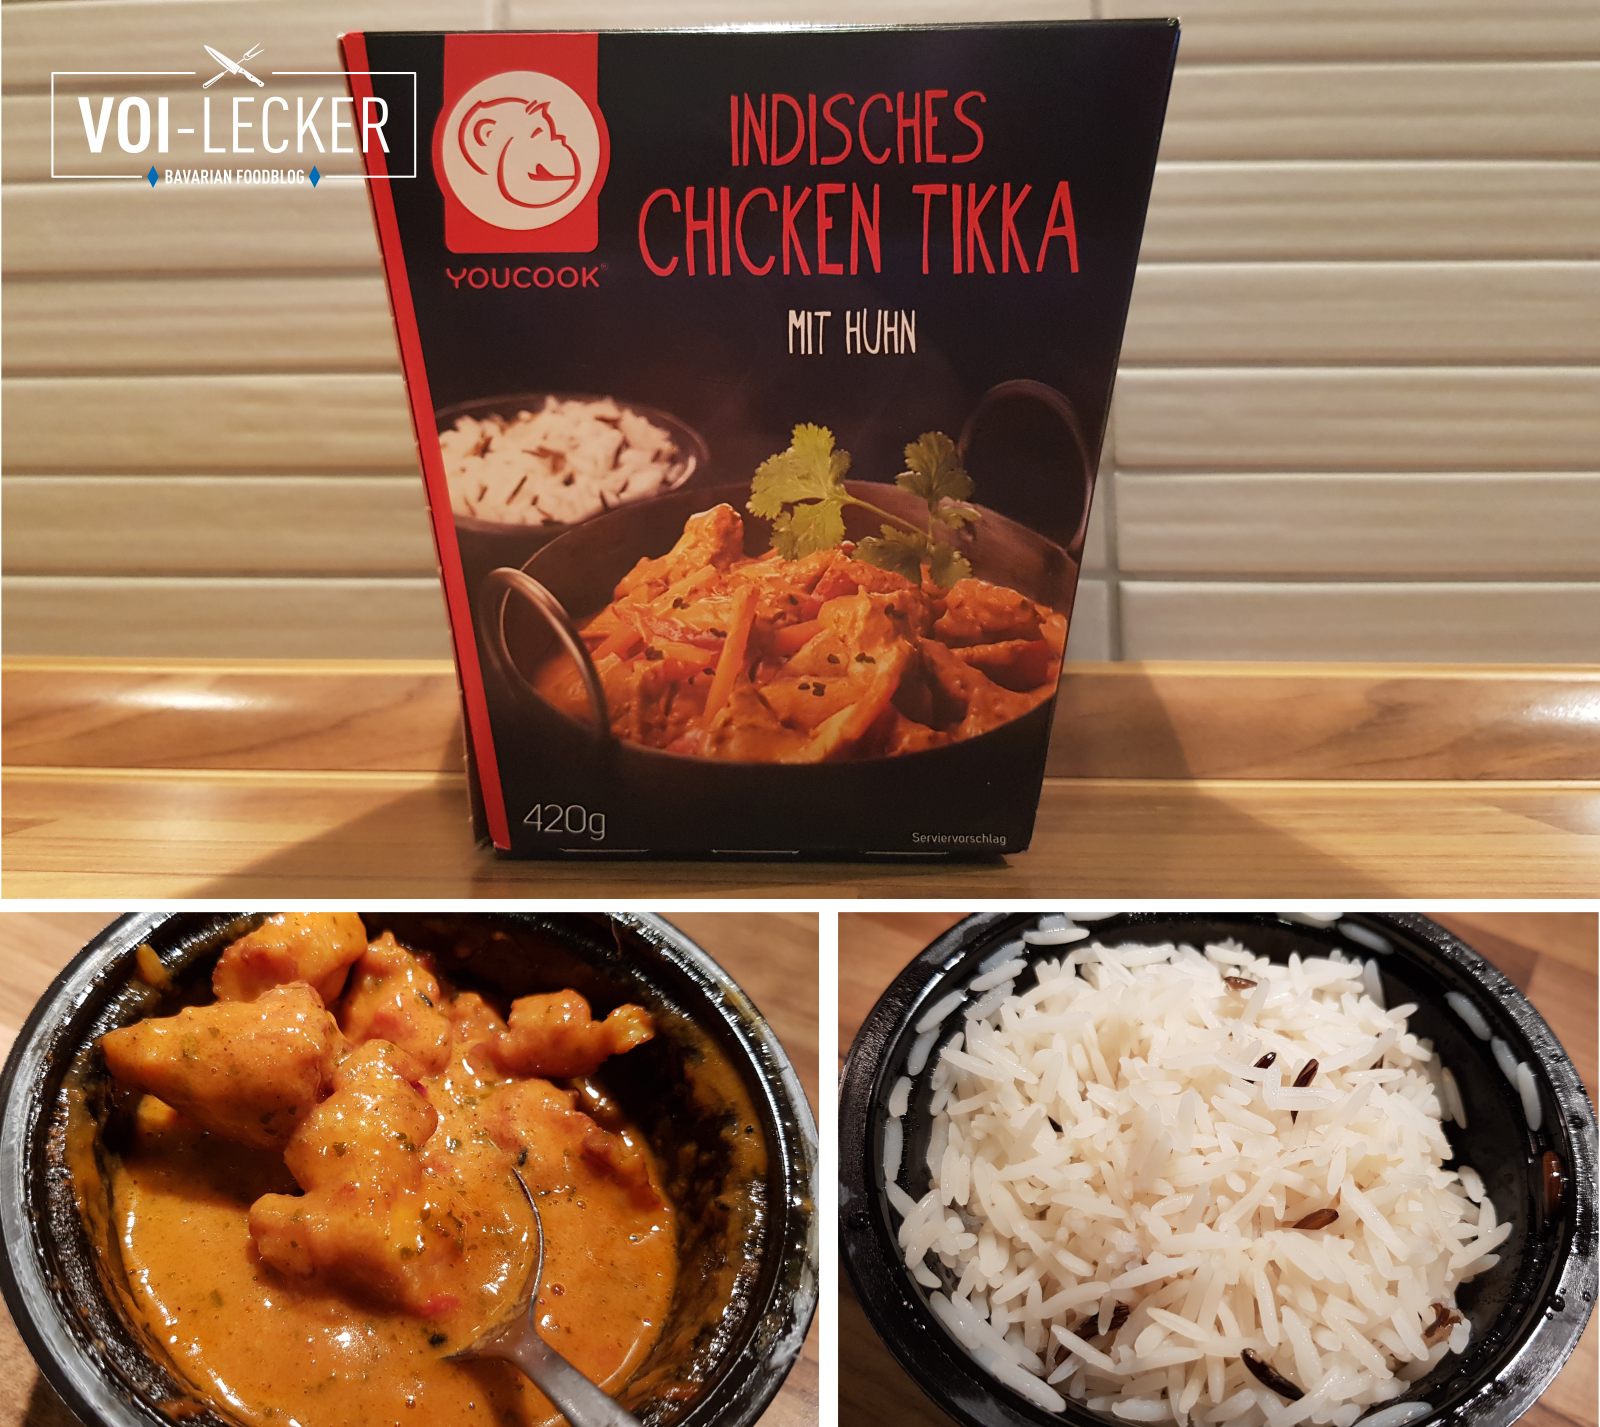 Indisches Chicken Tikka